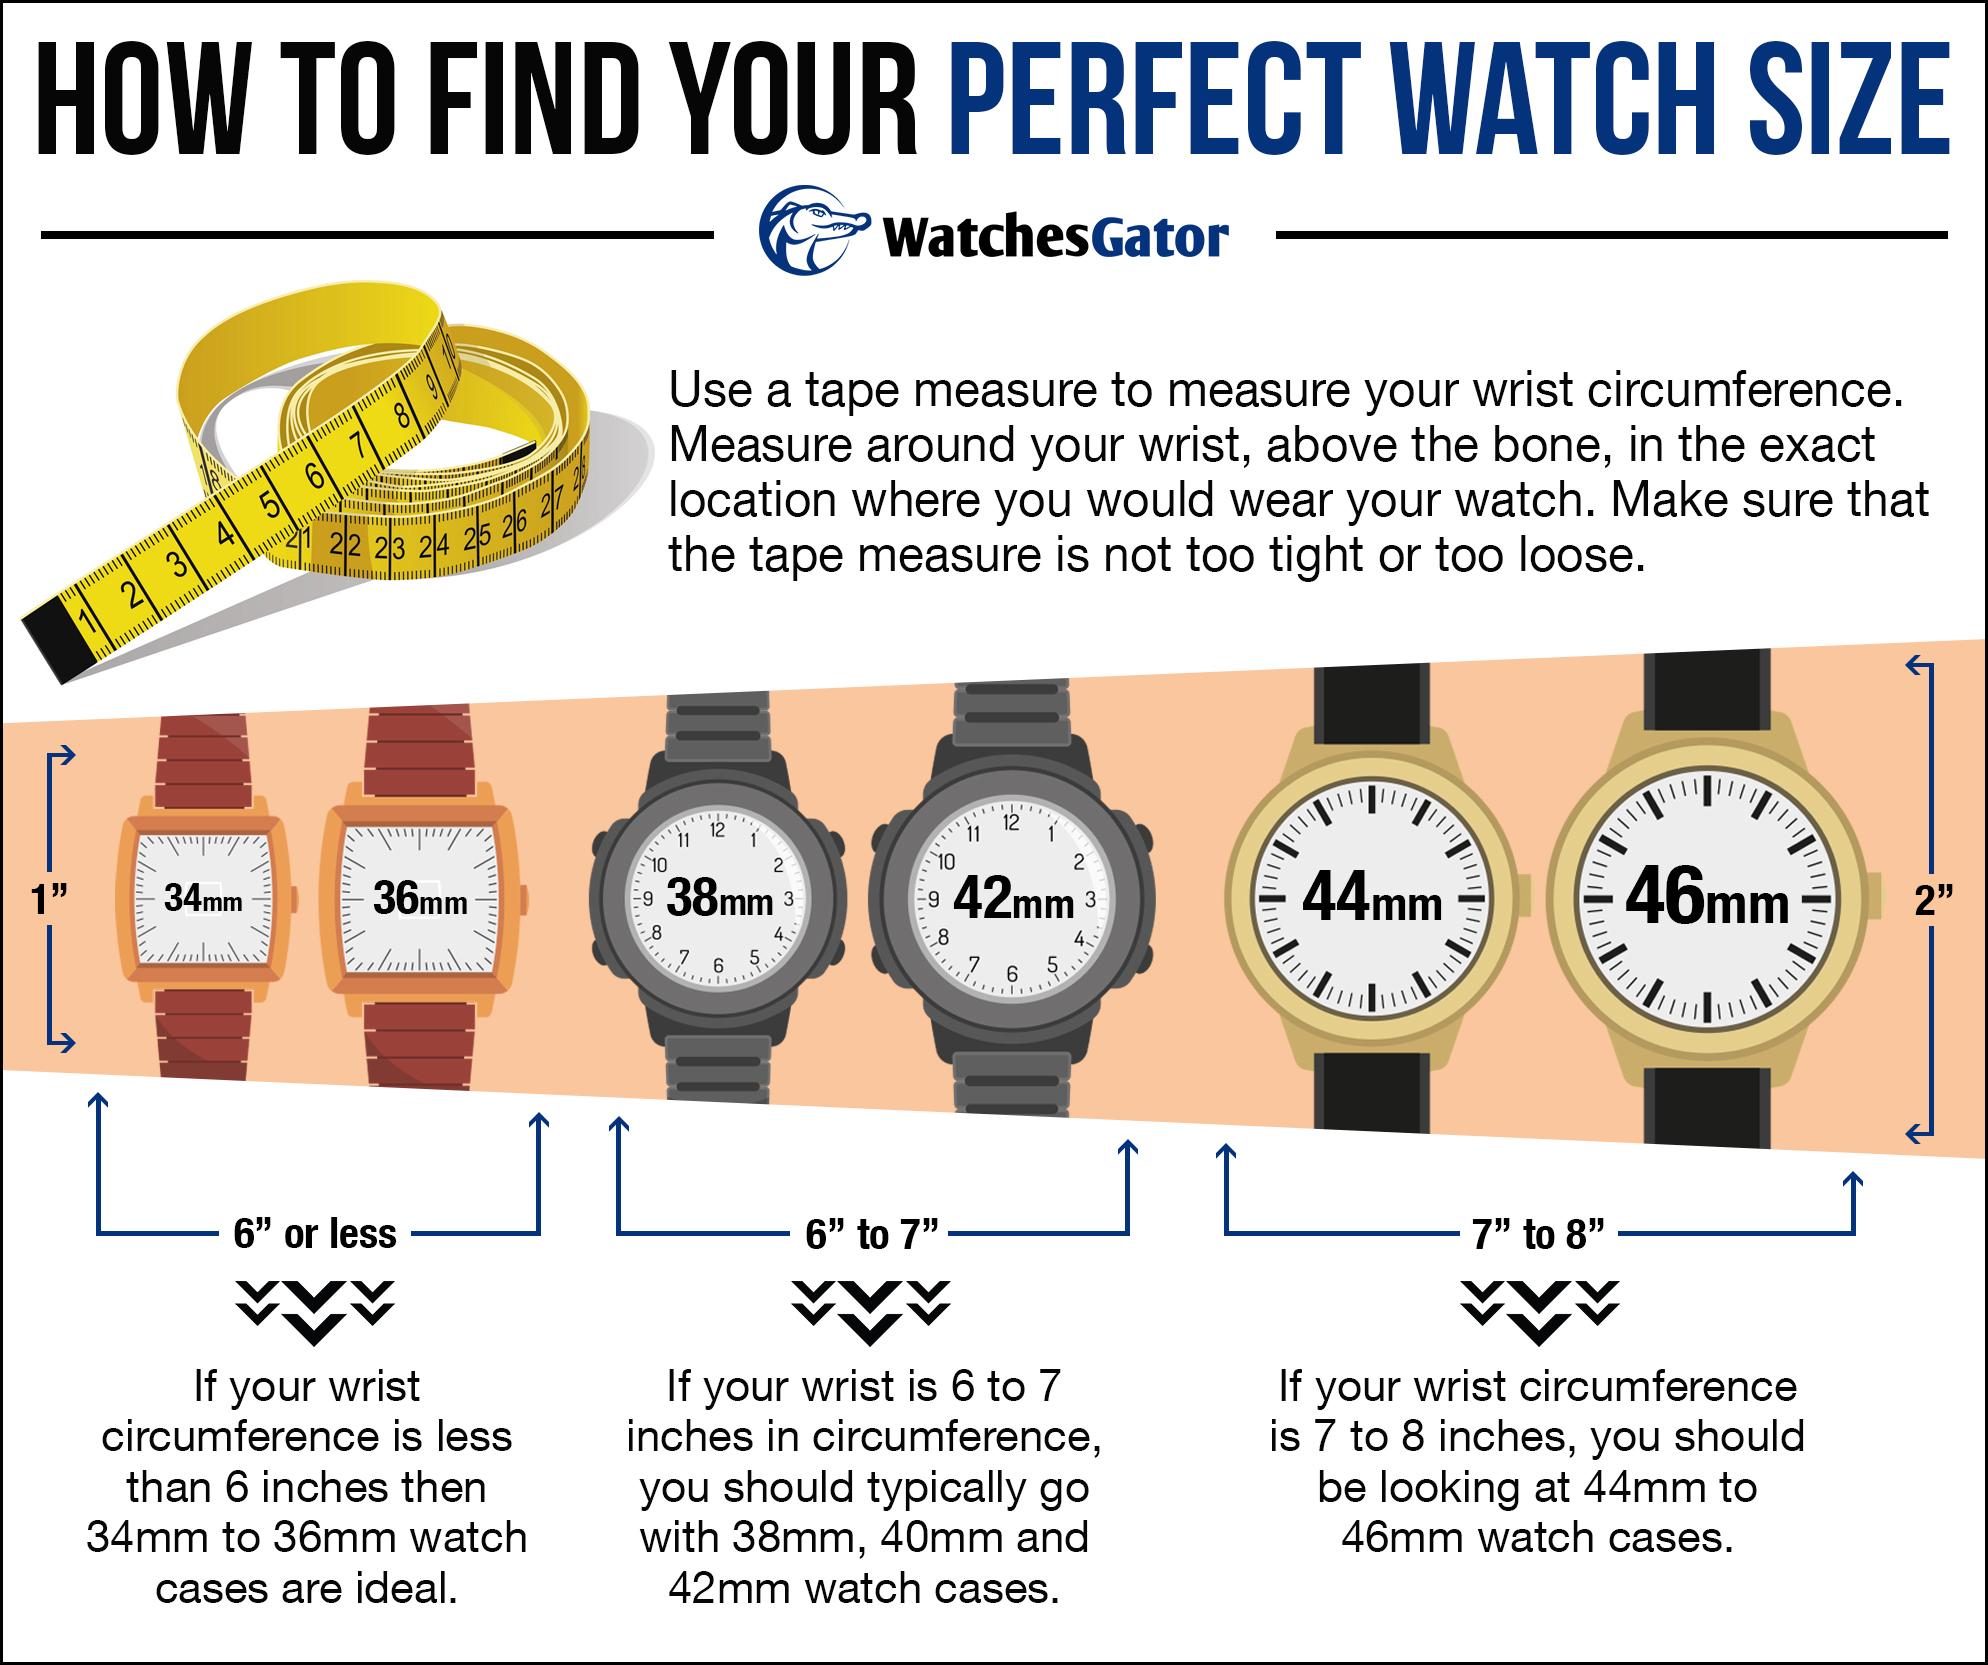 How To Find Your Perfect Watch Size